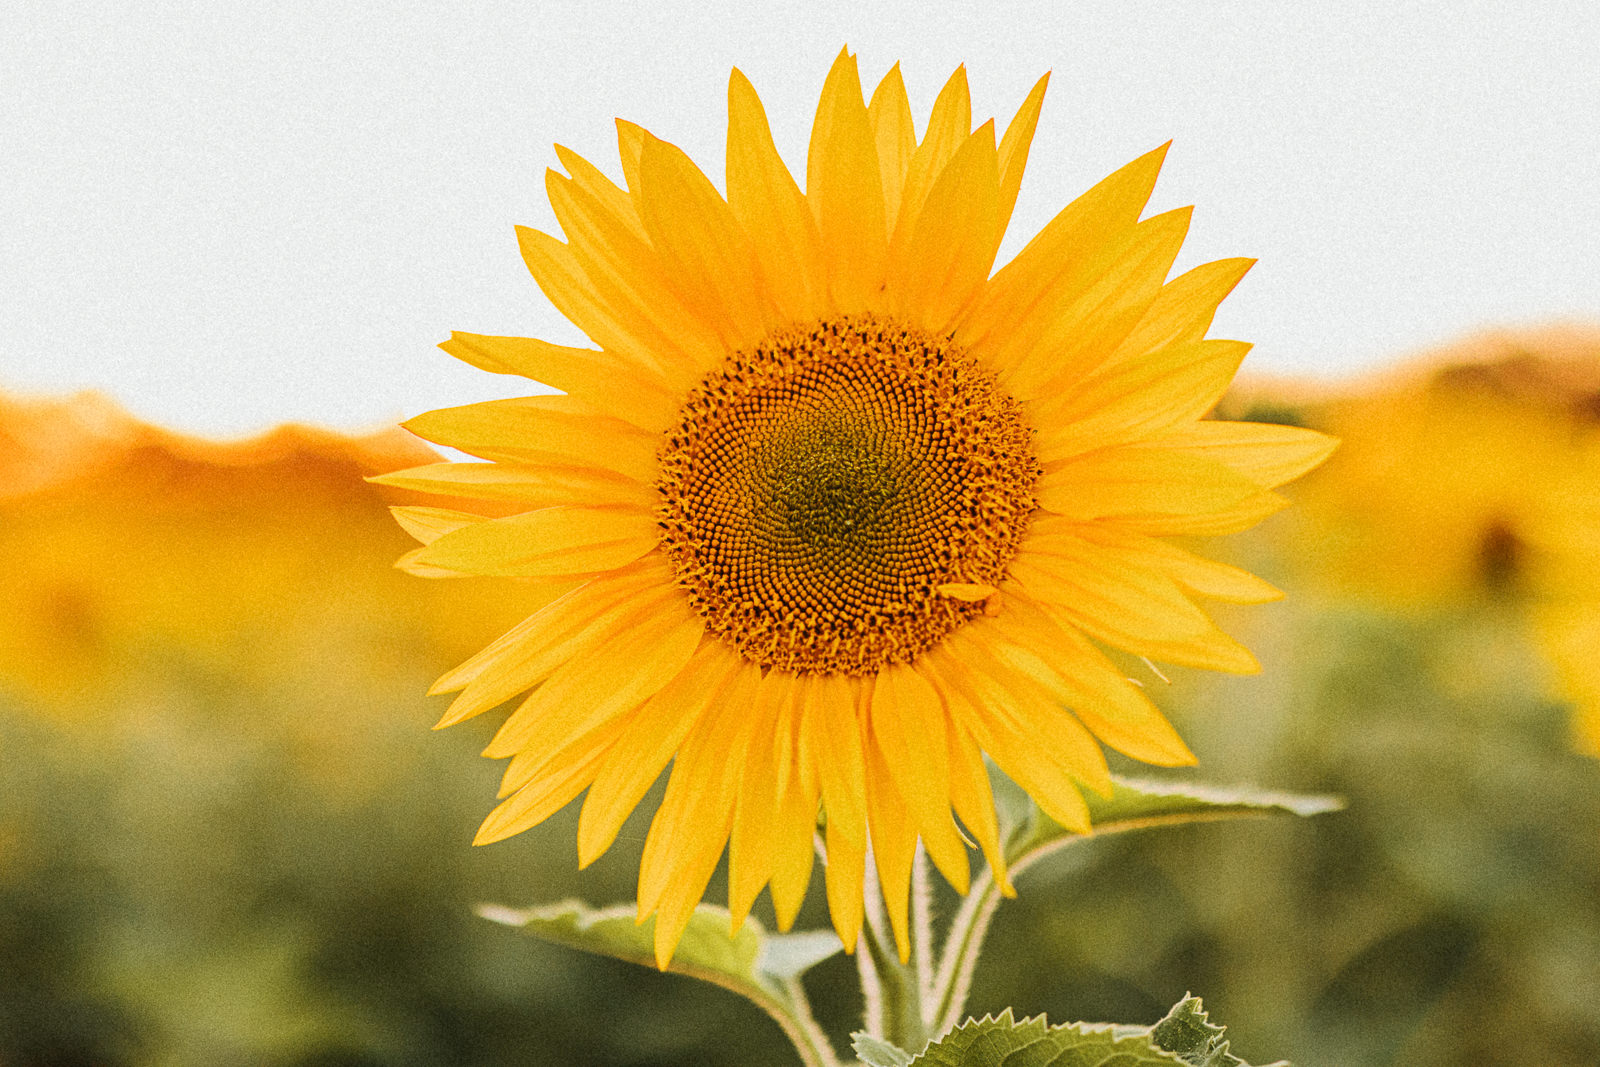 beautiful photo of sunflower in bloom